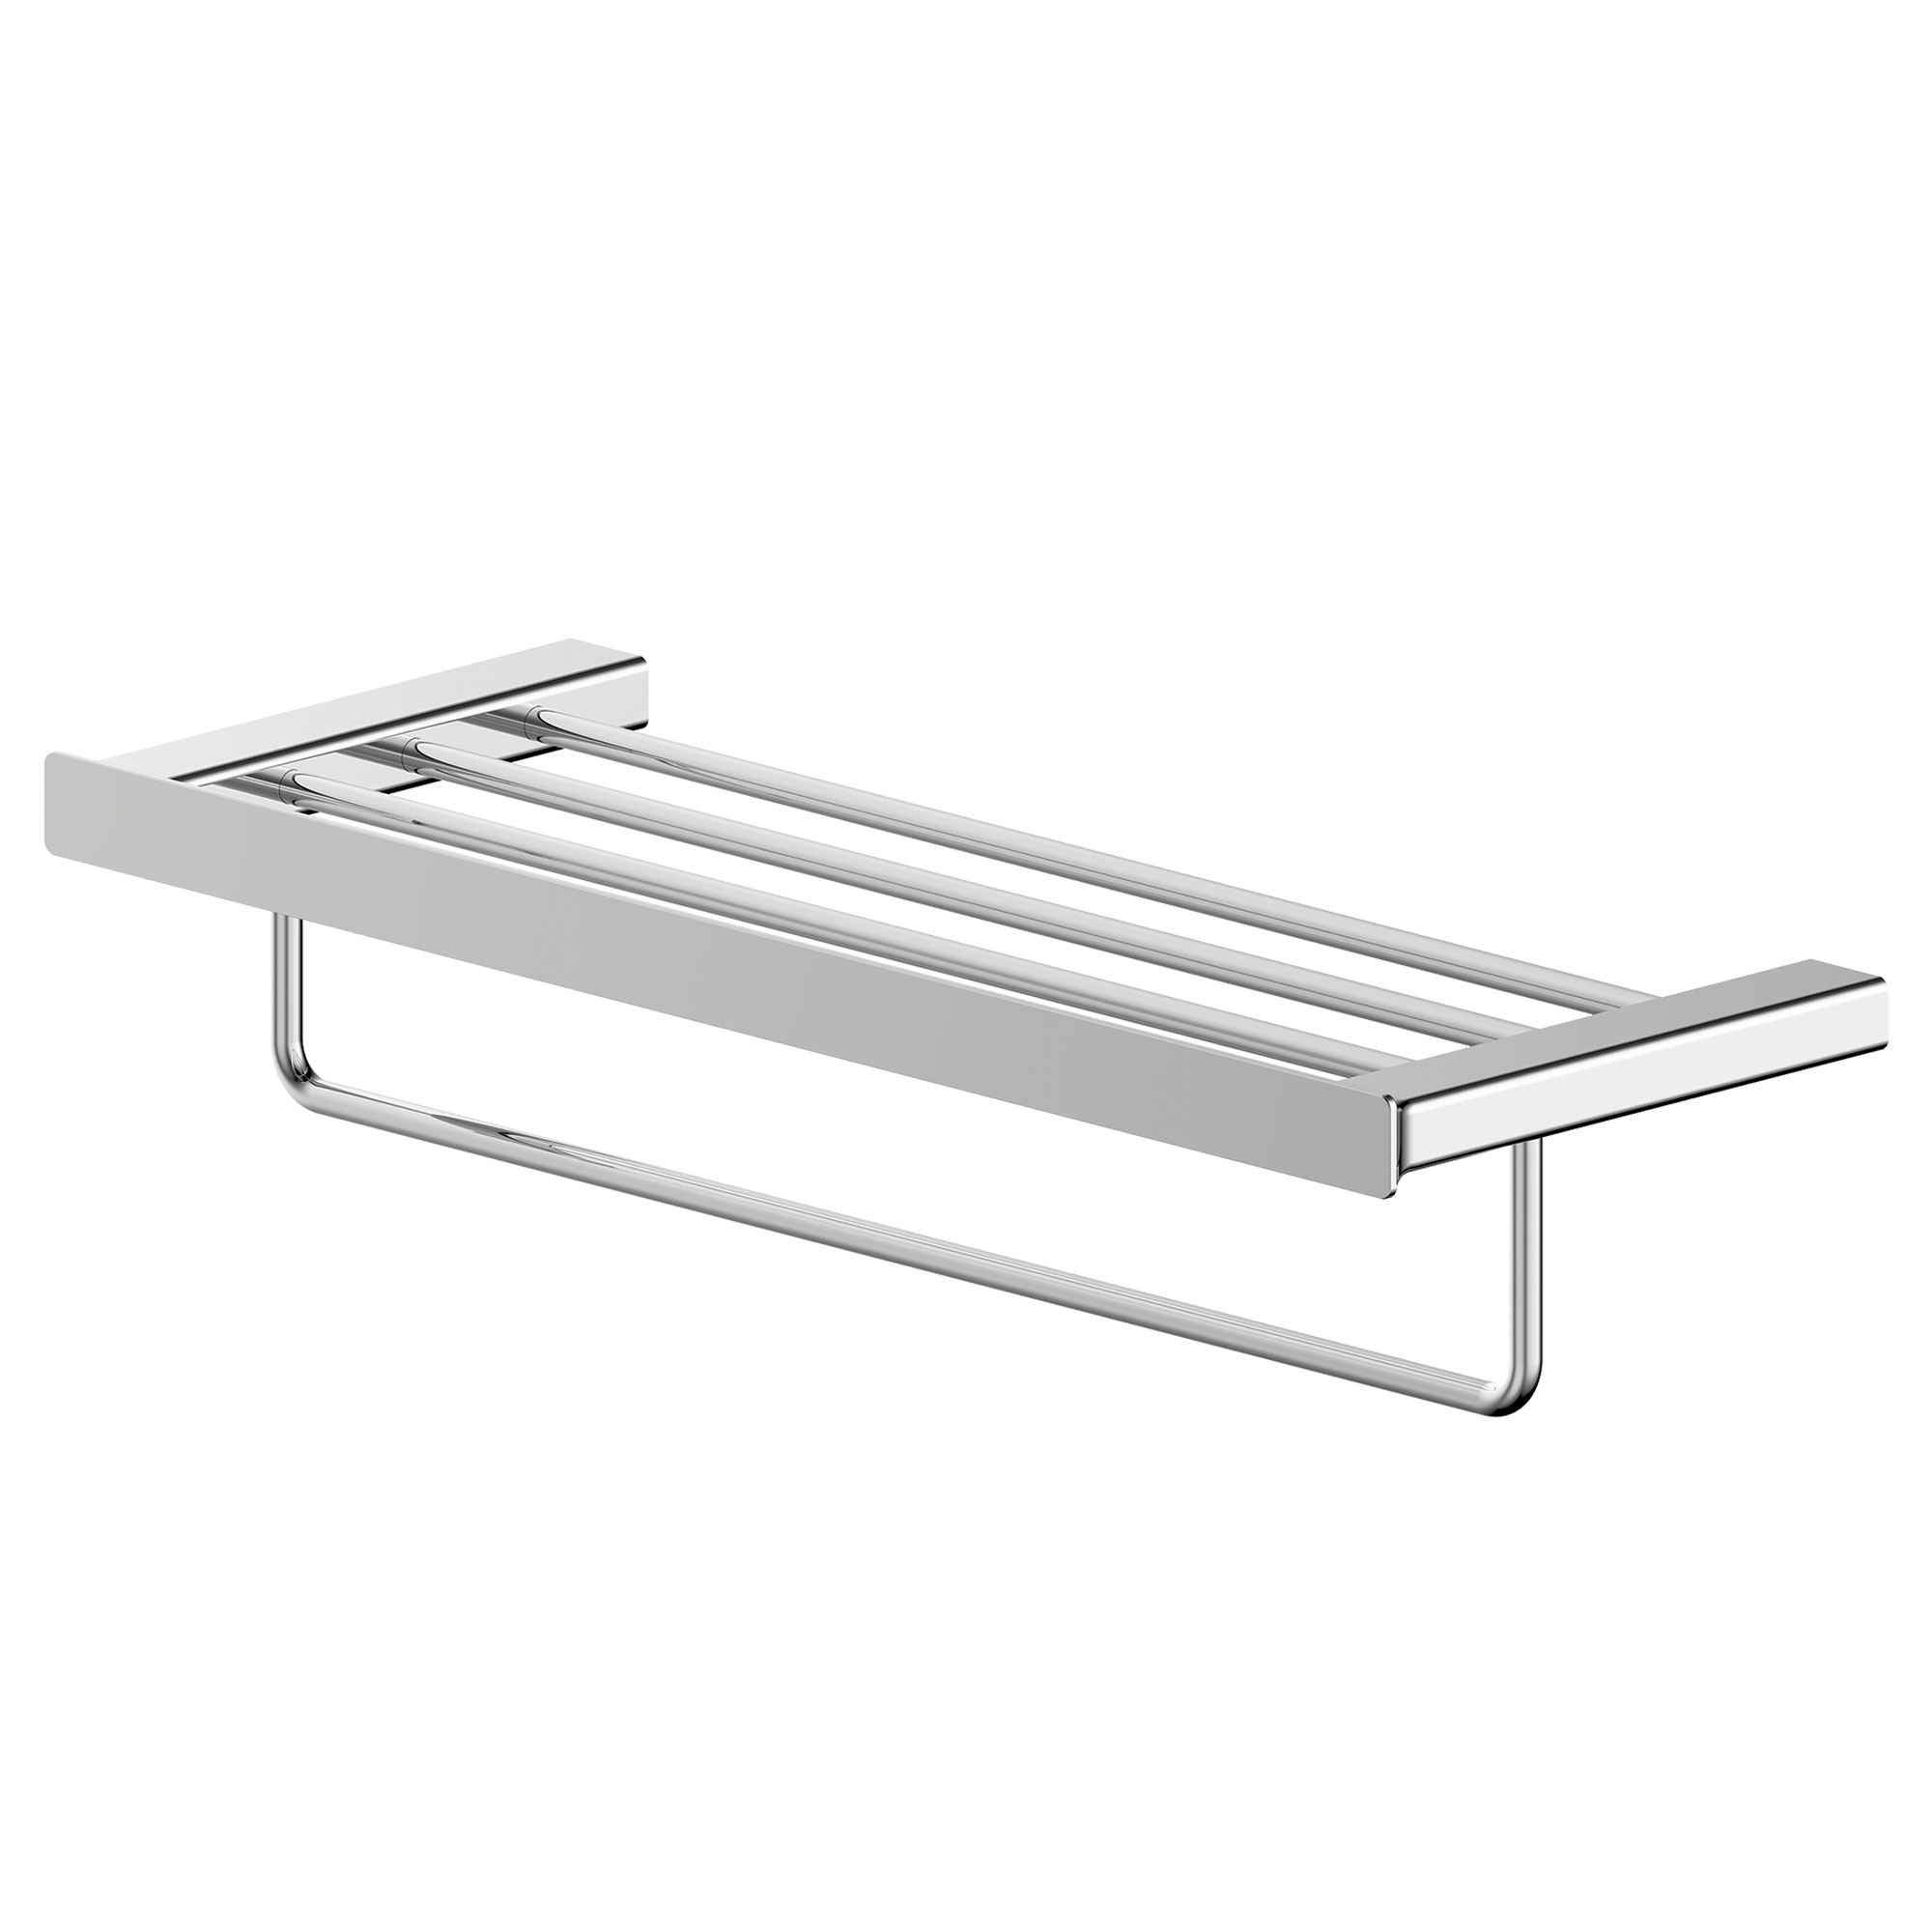 Contemporary Towel Rack - Projects Model